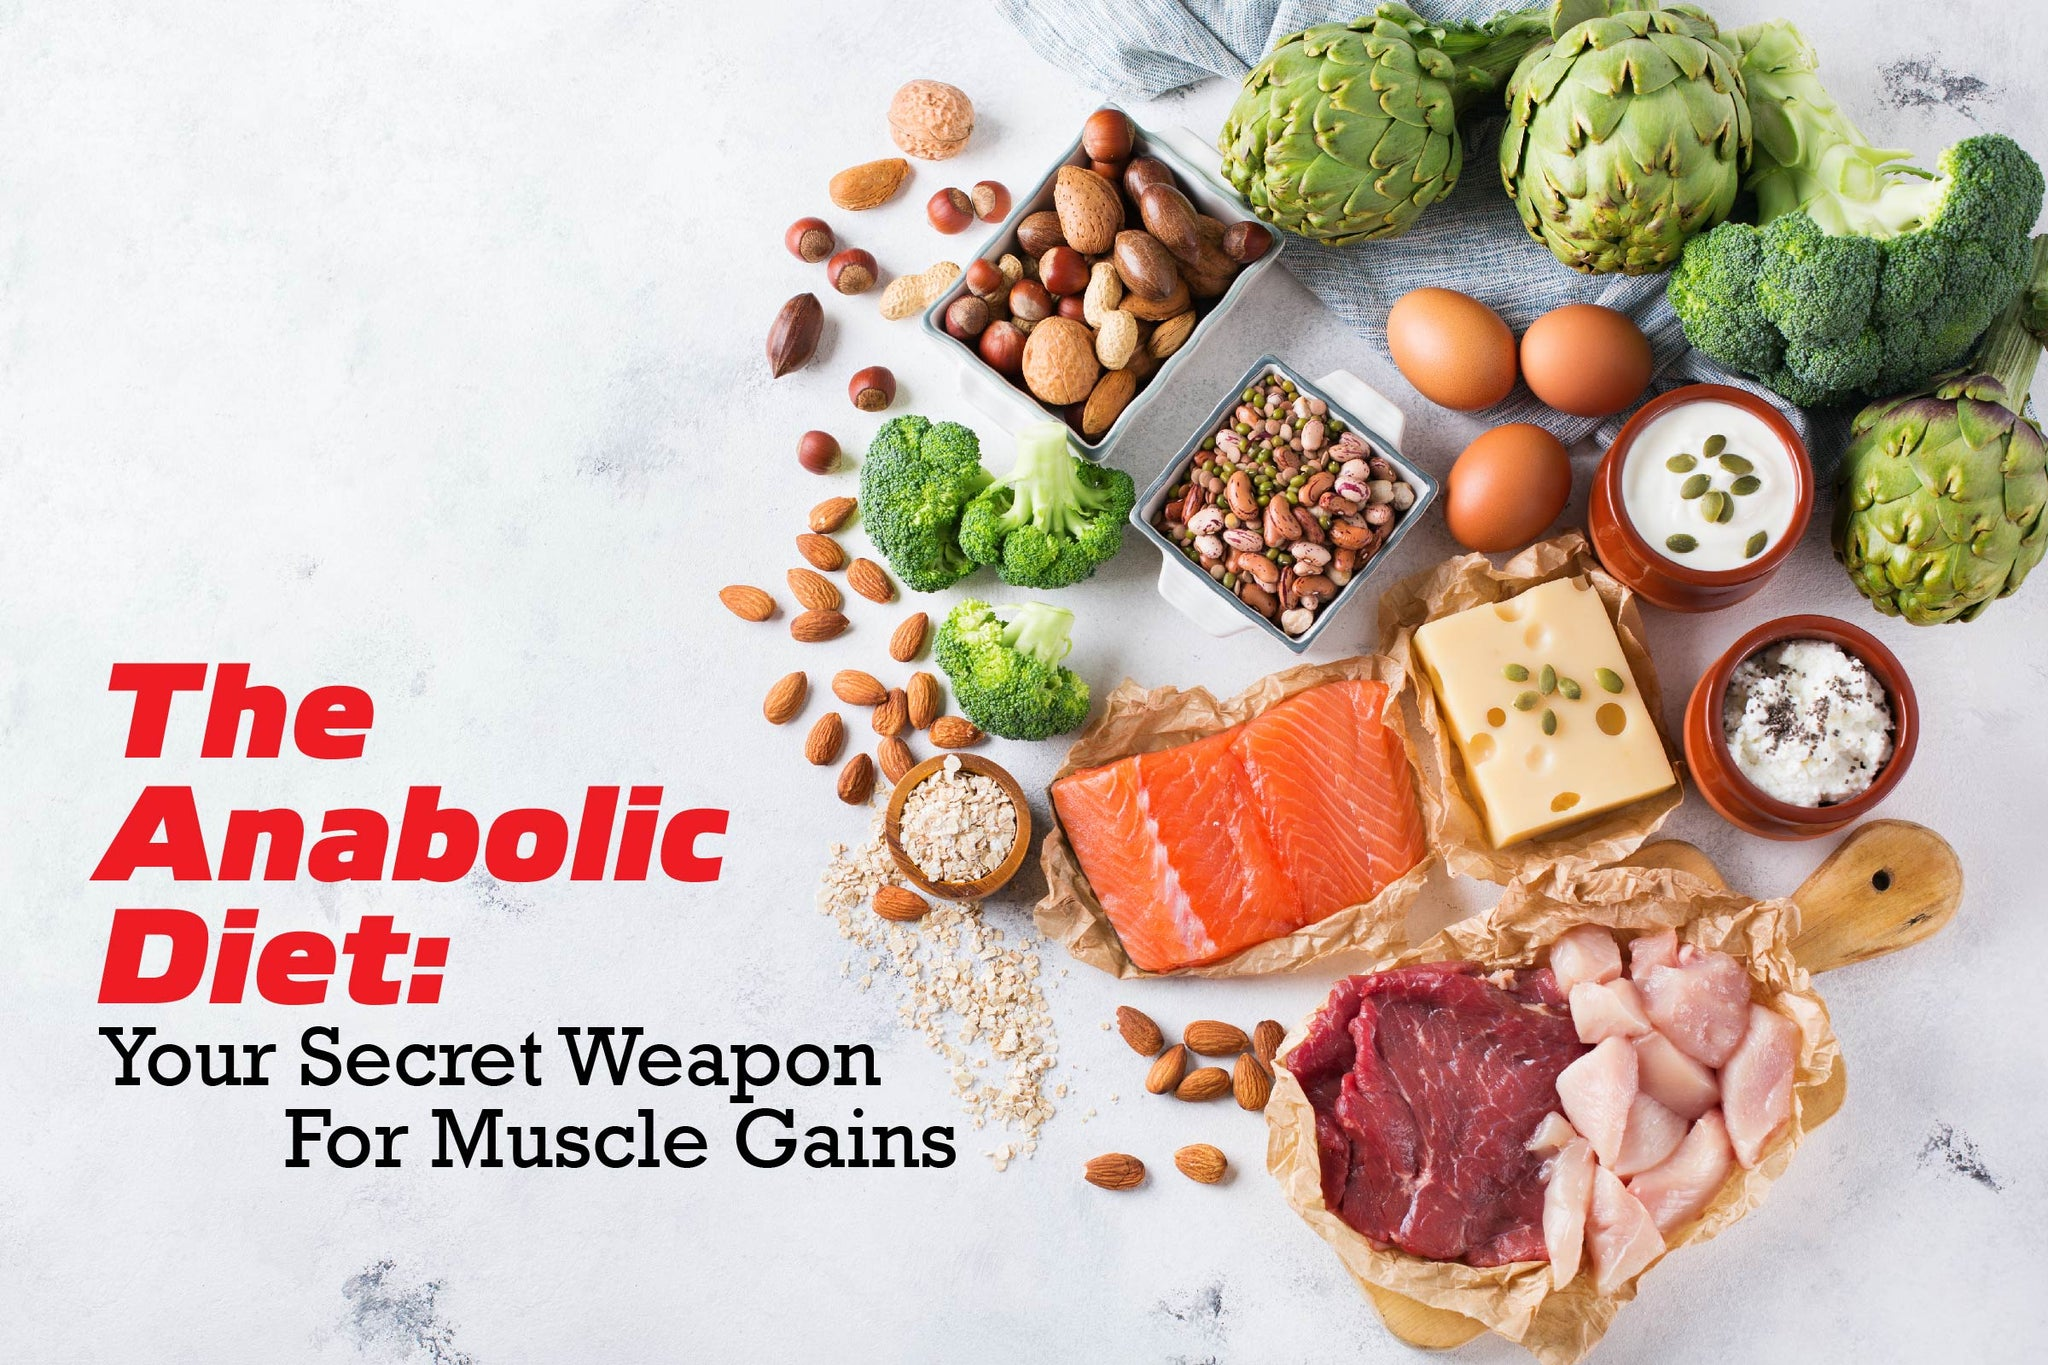 The Anabolic Diet: Gain Muscle and Lose Fat